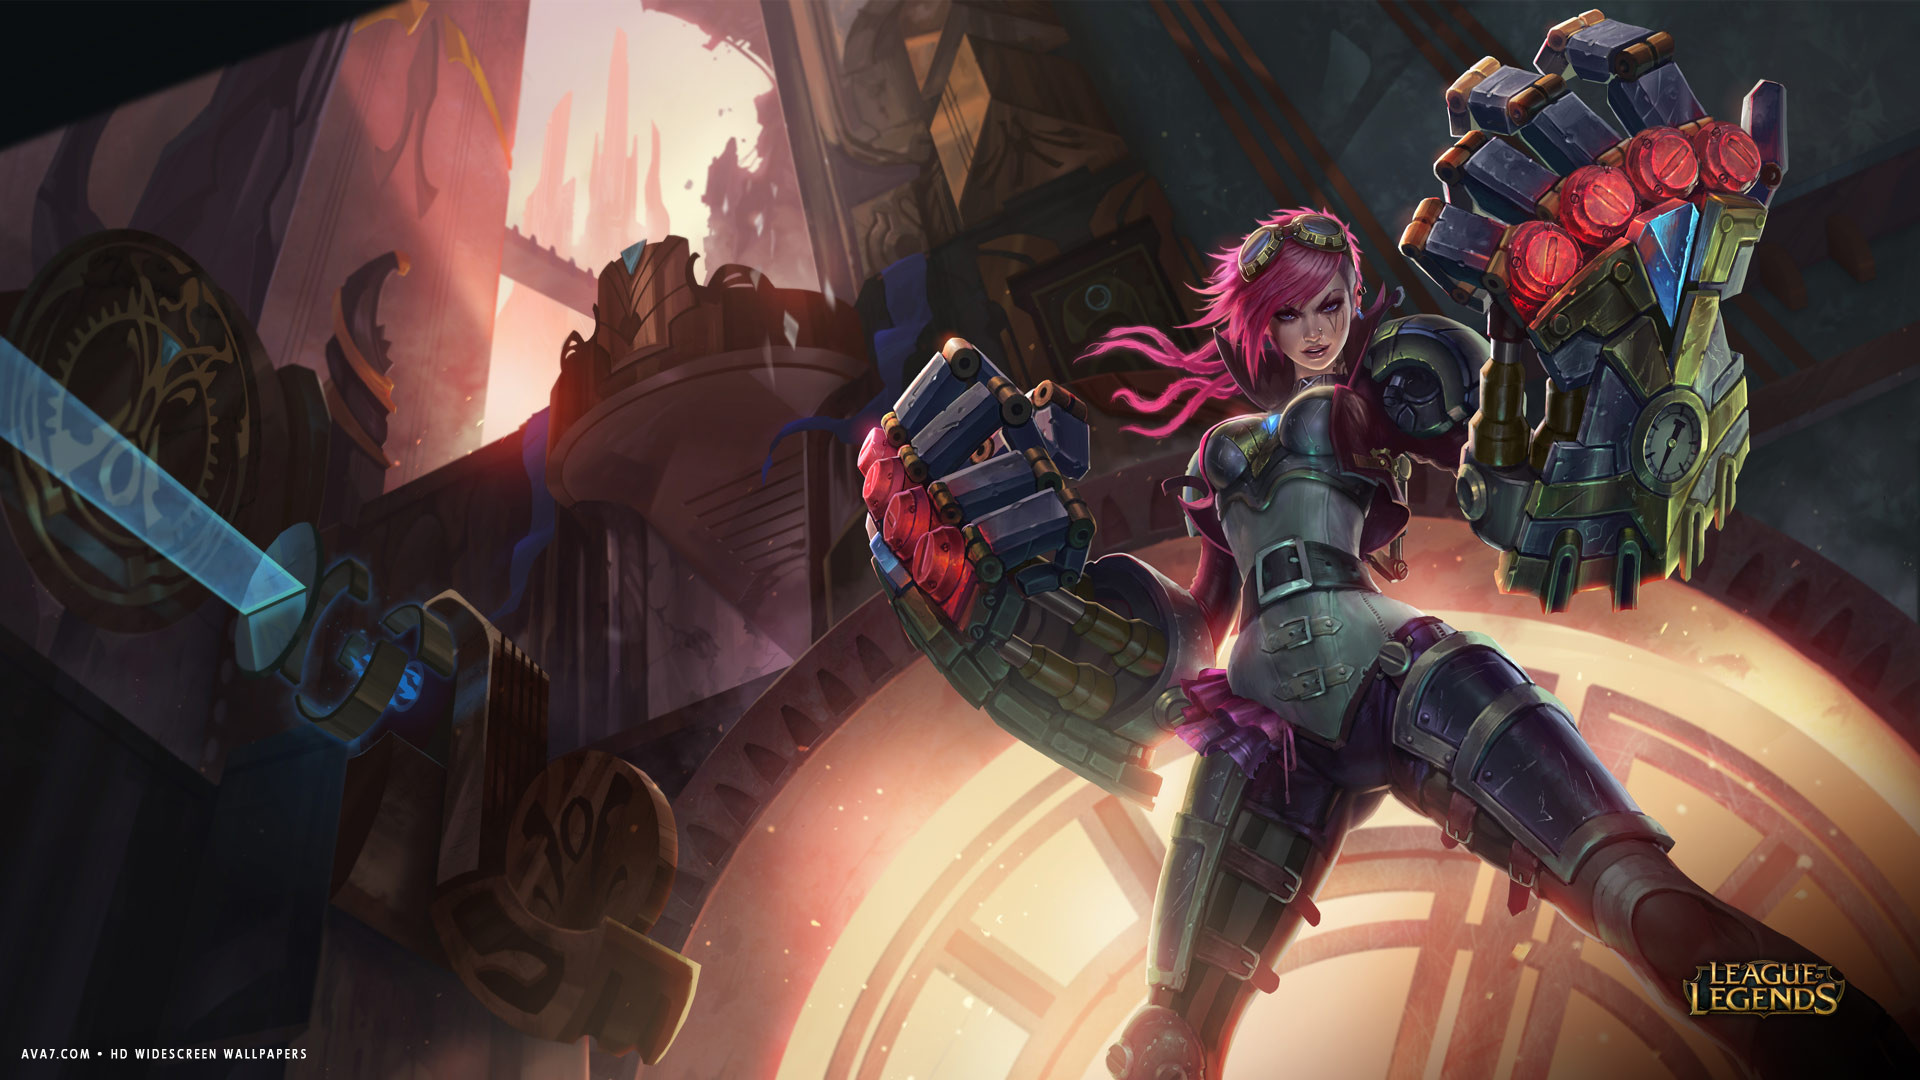 league of legends game lol vi girl mechanic fists hd widescreen wallpaper